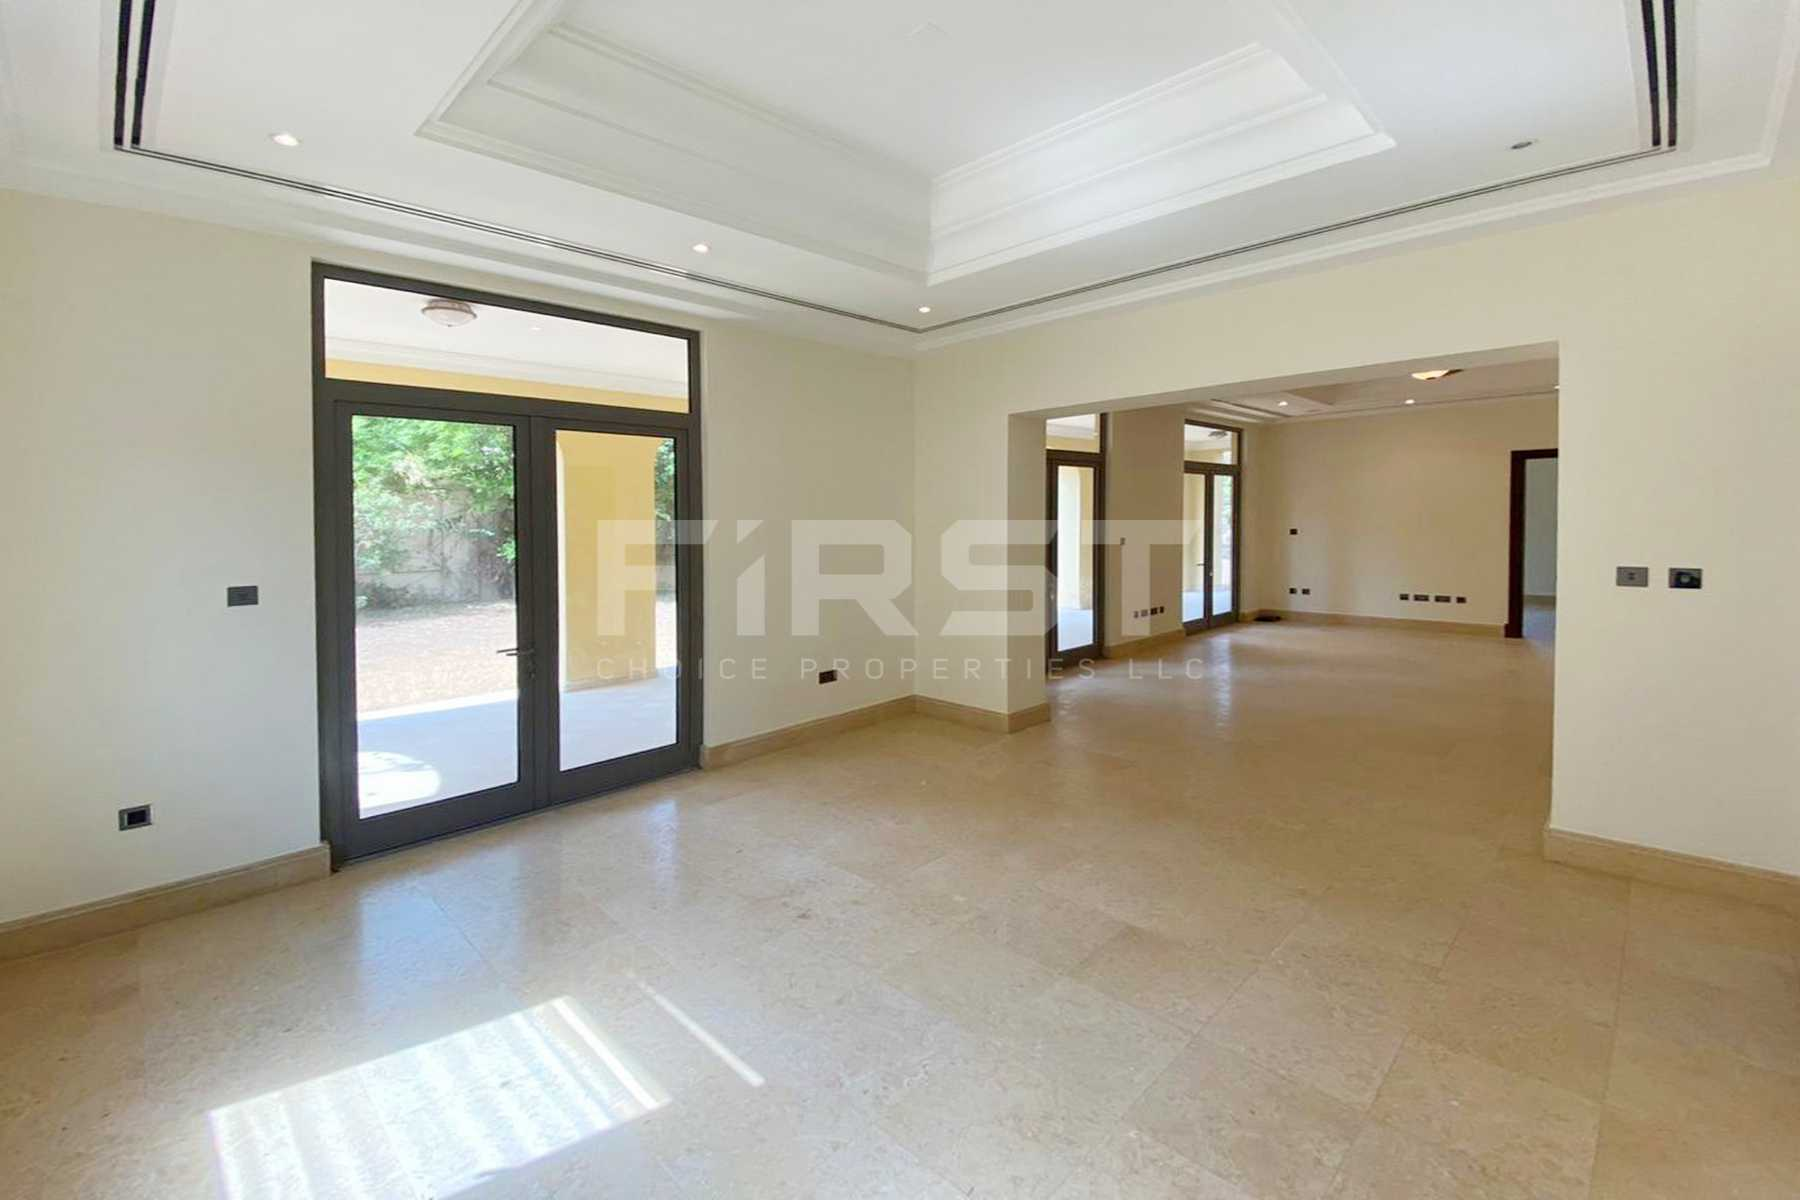 Internal Photo of 5 Bedroom Villa in Saadiyat Beach Villa in Saadiyat Island Abu Dhabi UAE (15).jpg